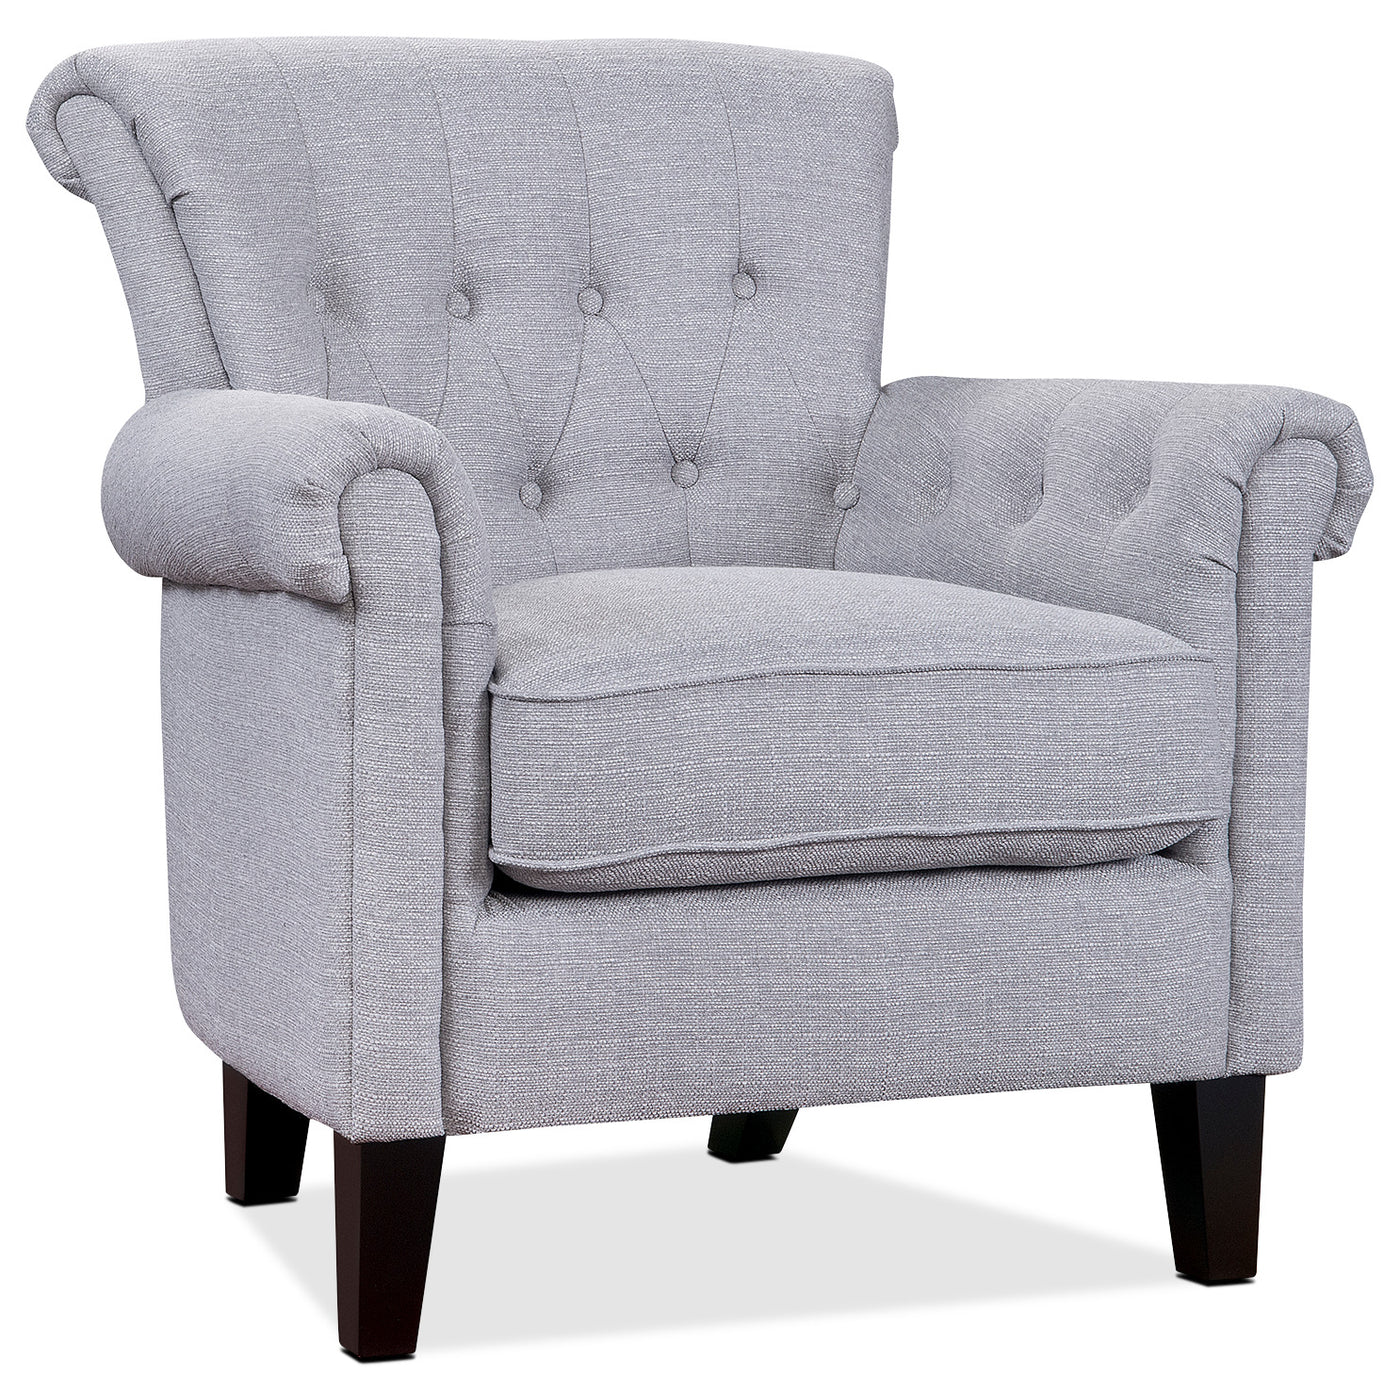 Light Grey Accent Chair: Molly Accent Chair - Light Grey